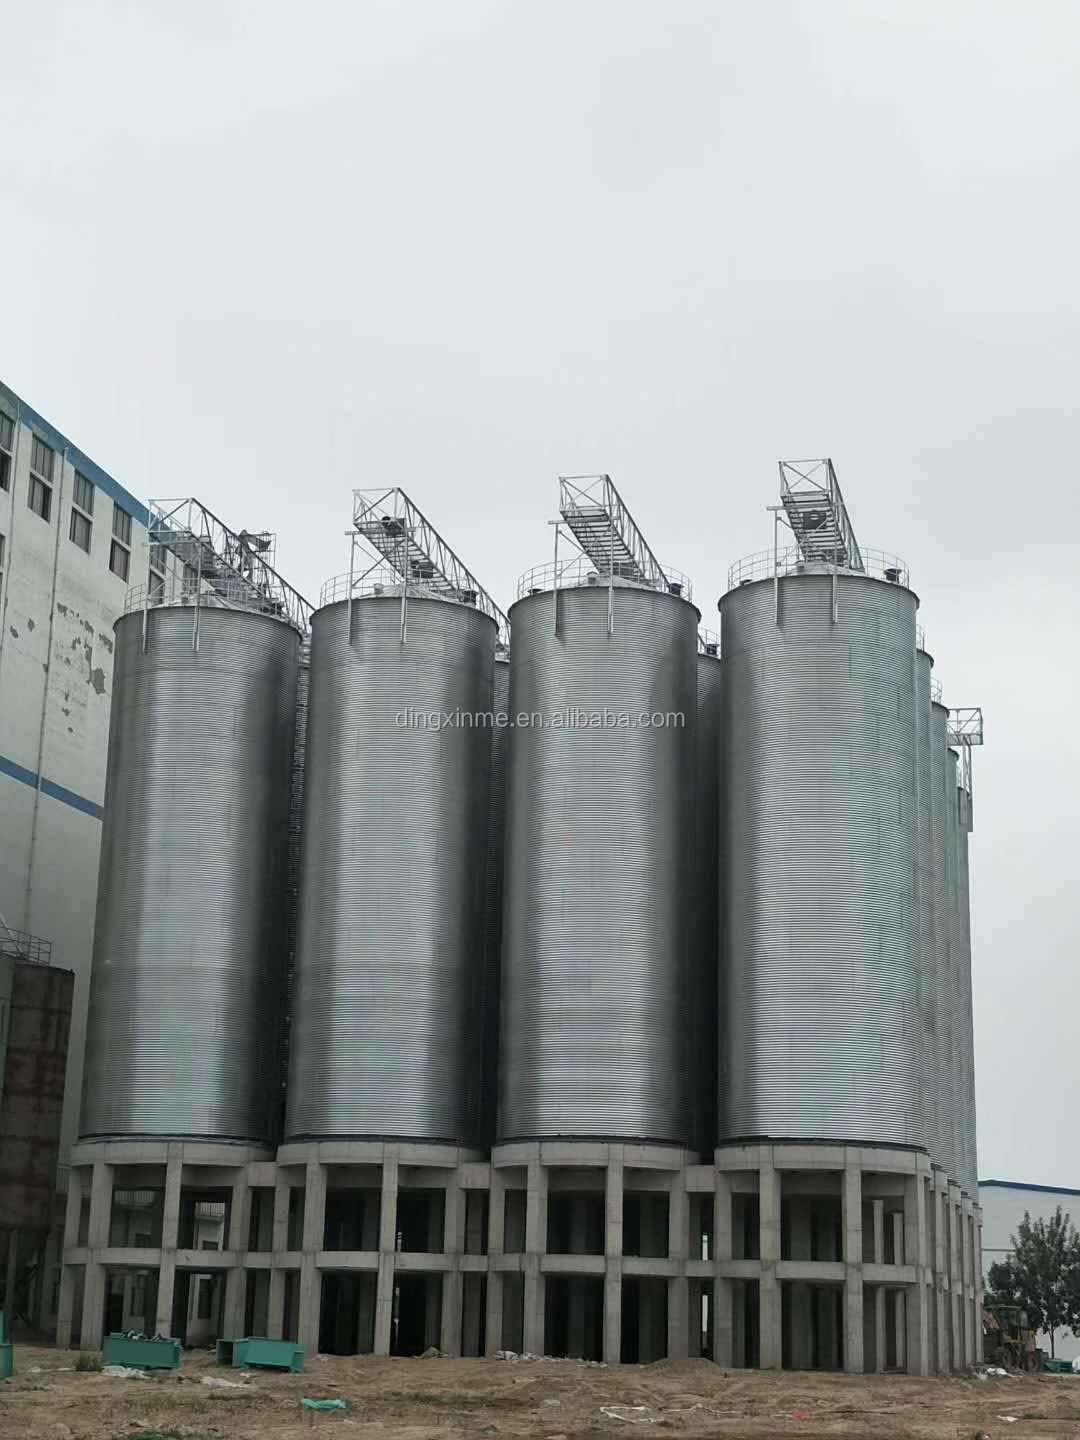 Easy Operation 100T Double-side Hot Galvanized Steel Silo Plant for Paddy